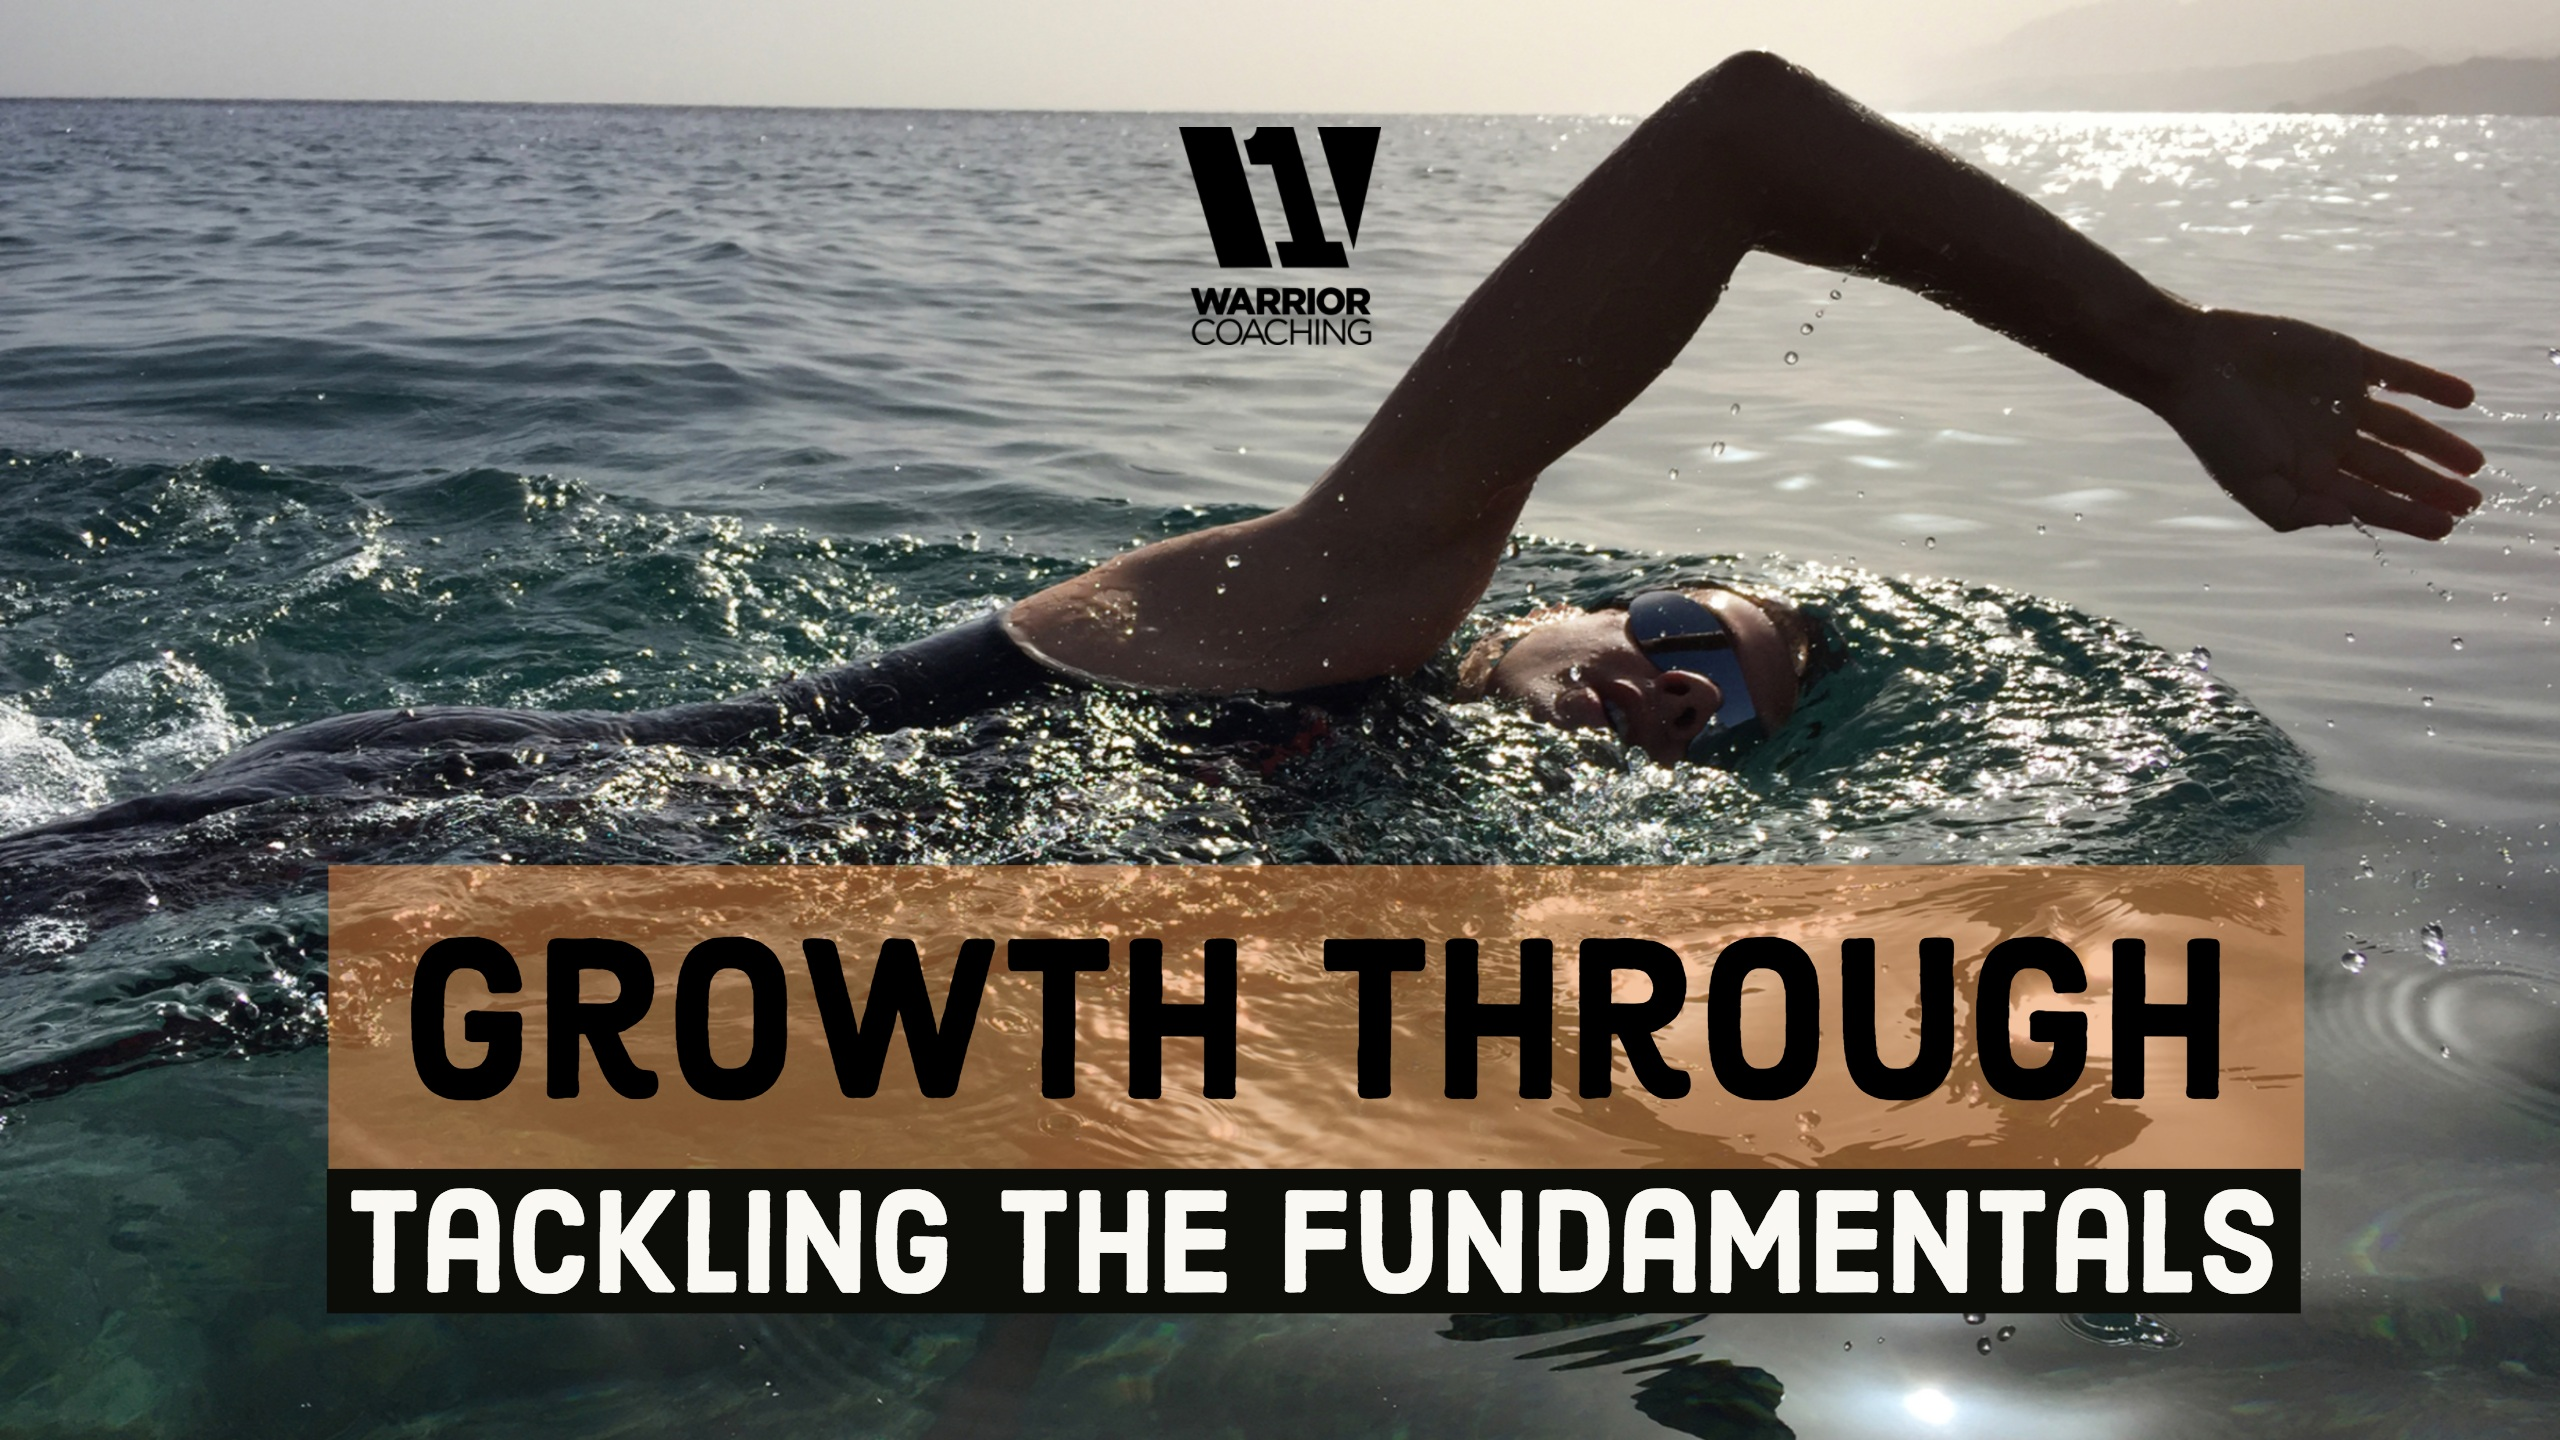 Growth Through Tackling the Fundamentals